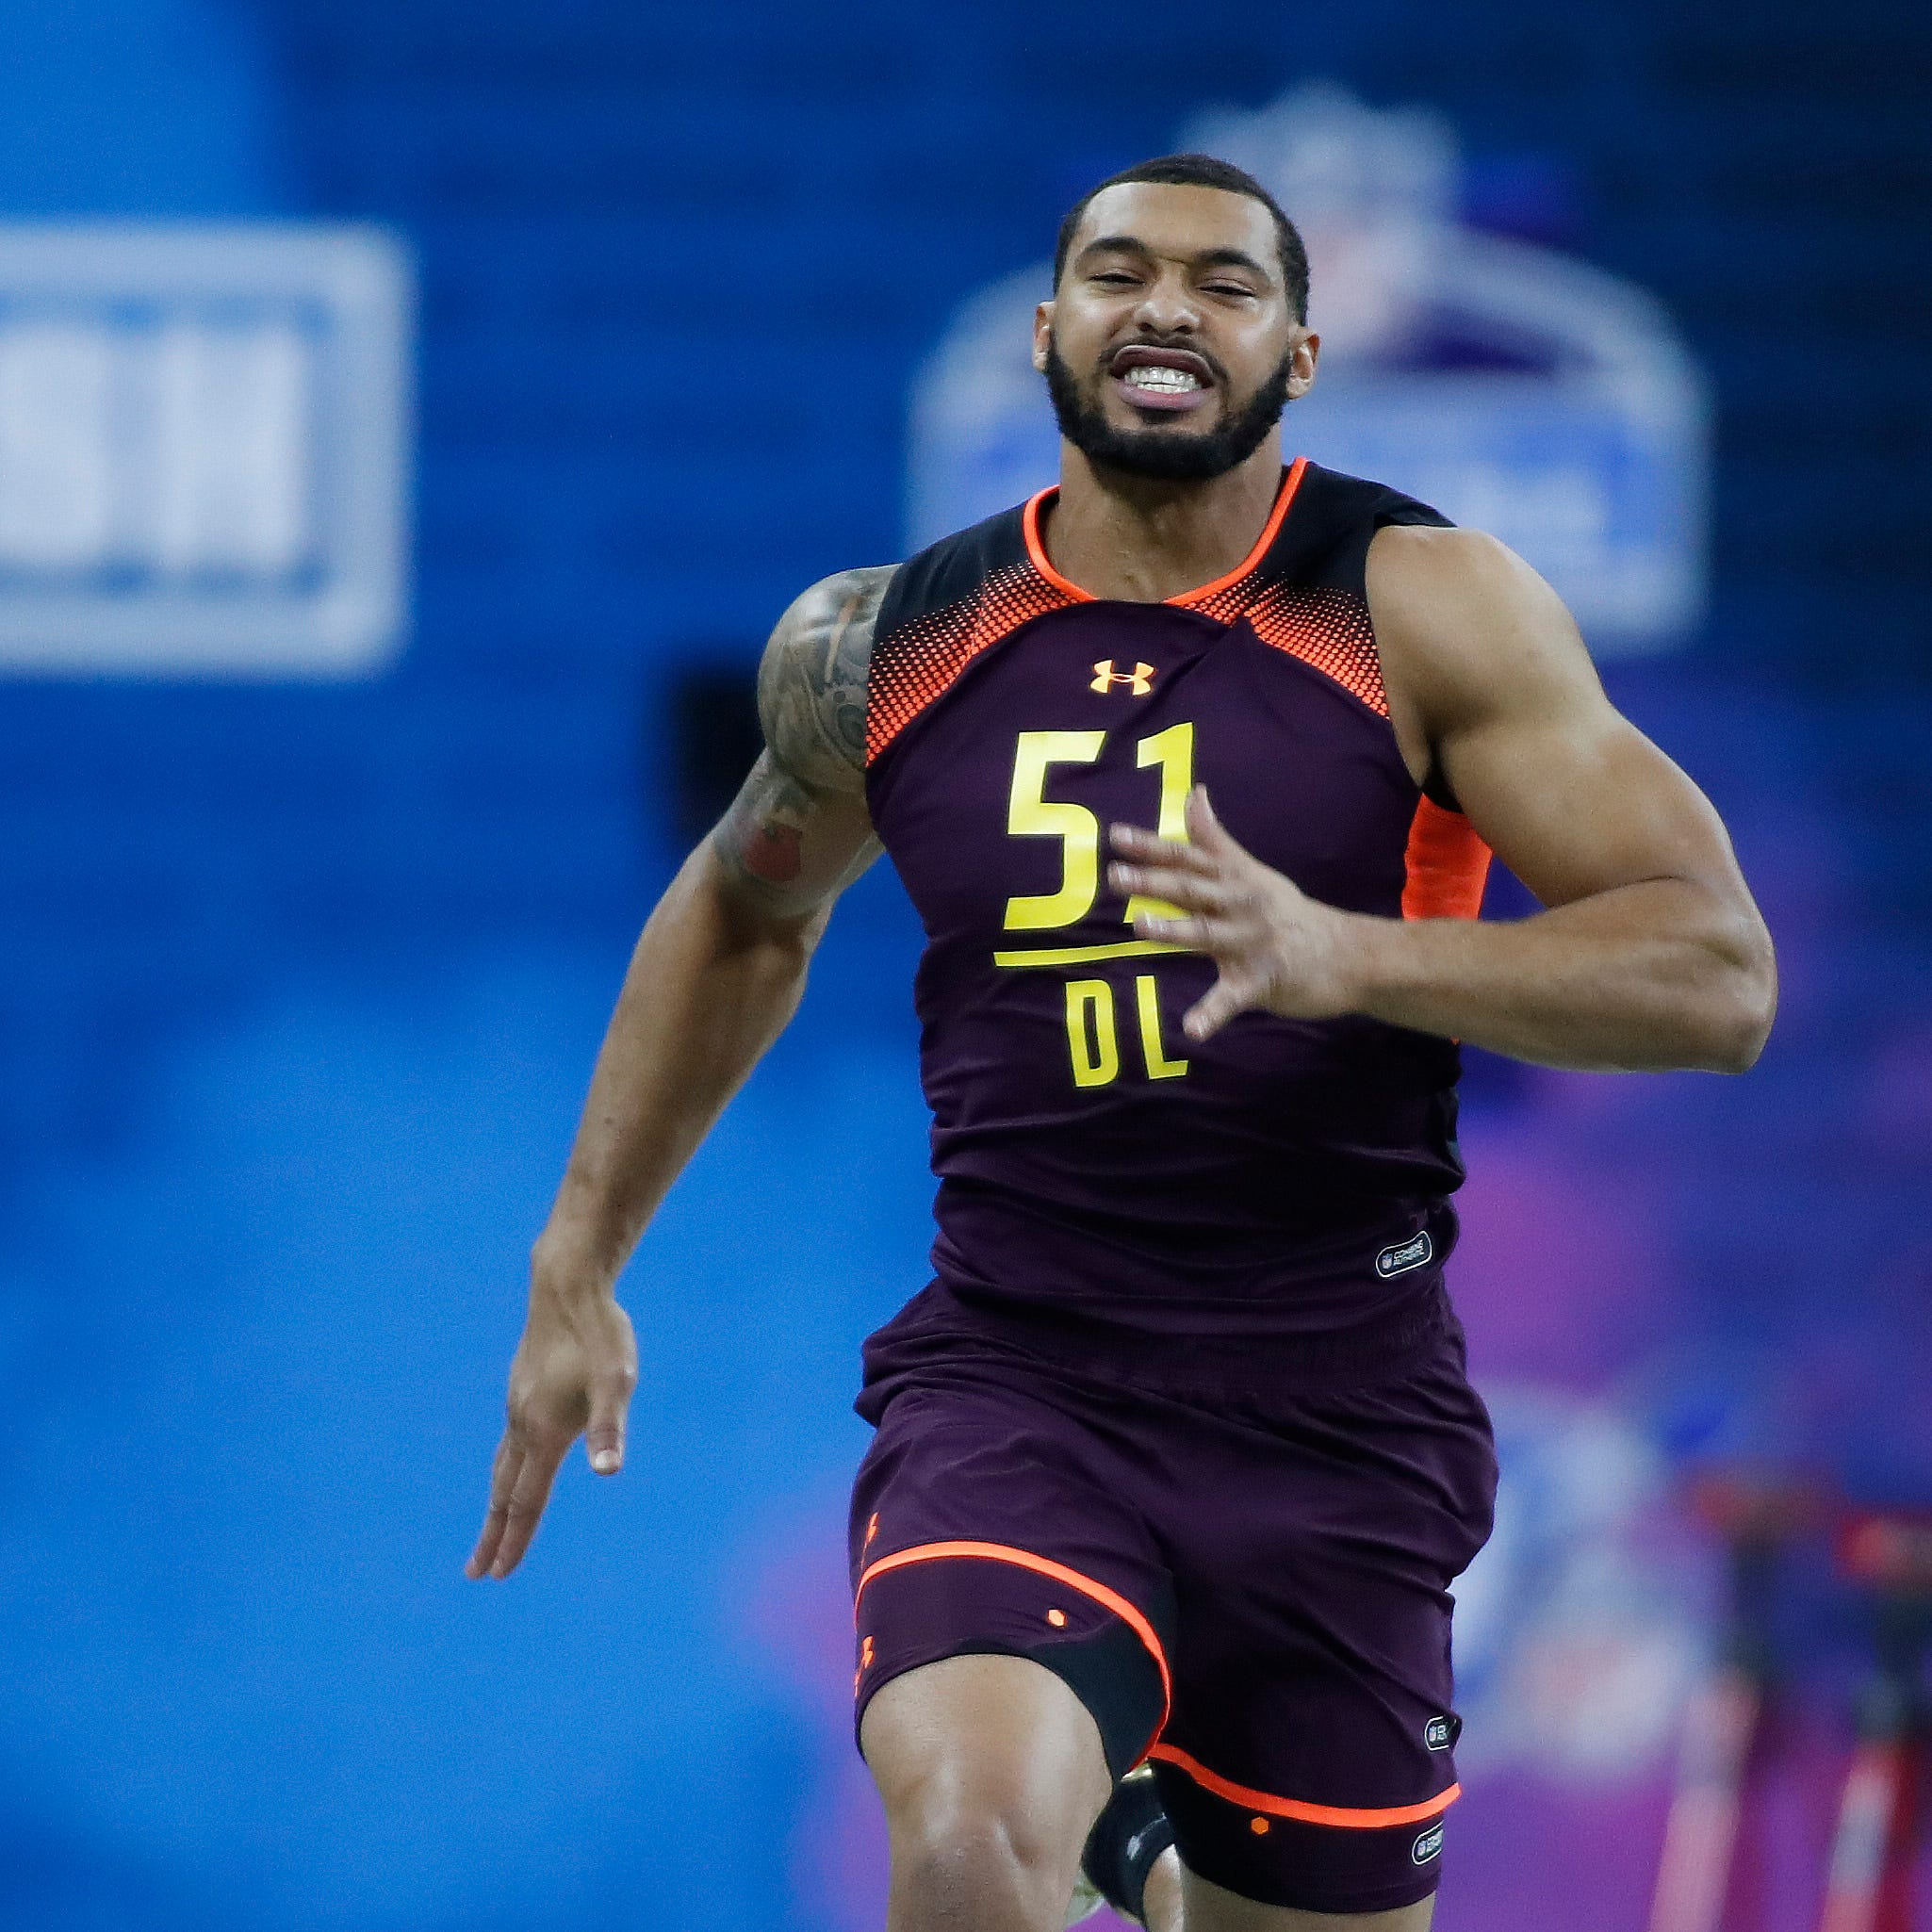 Colts owner Jim Irsay stunned by defensive lineman's speed at Combine